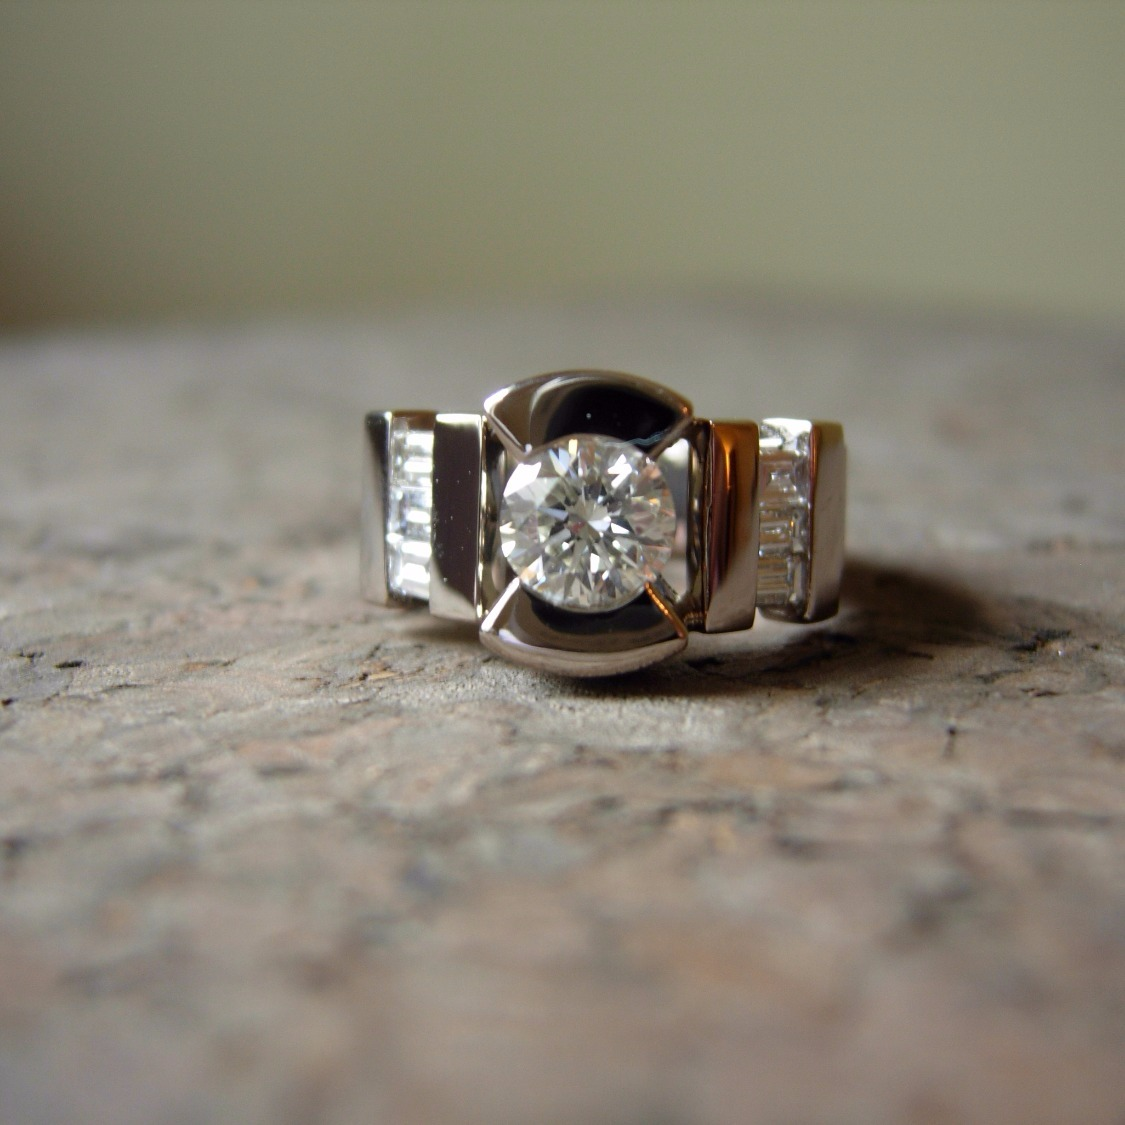 Custom 18K palladium white gold ring